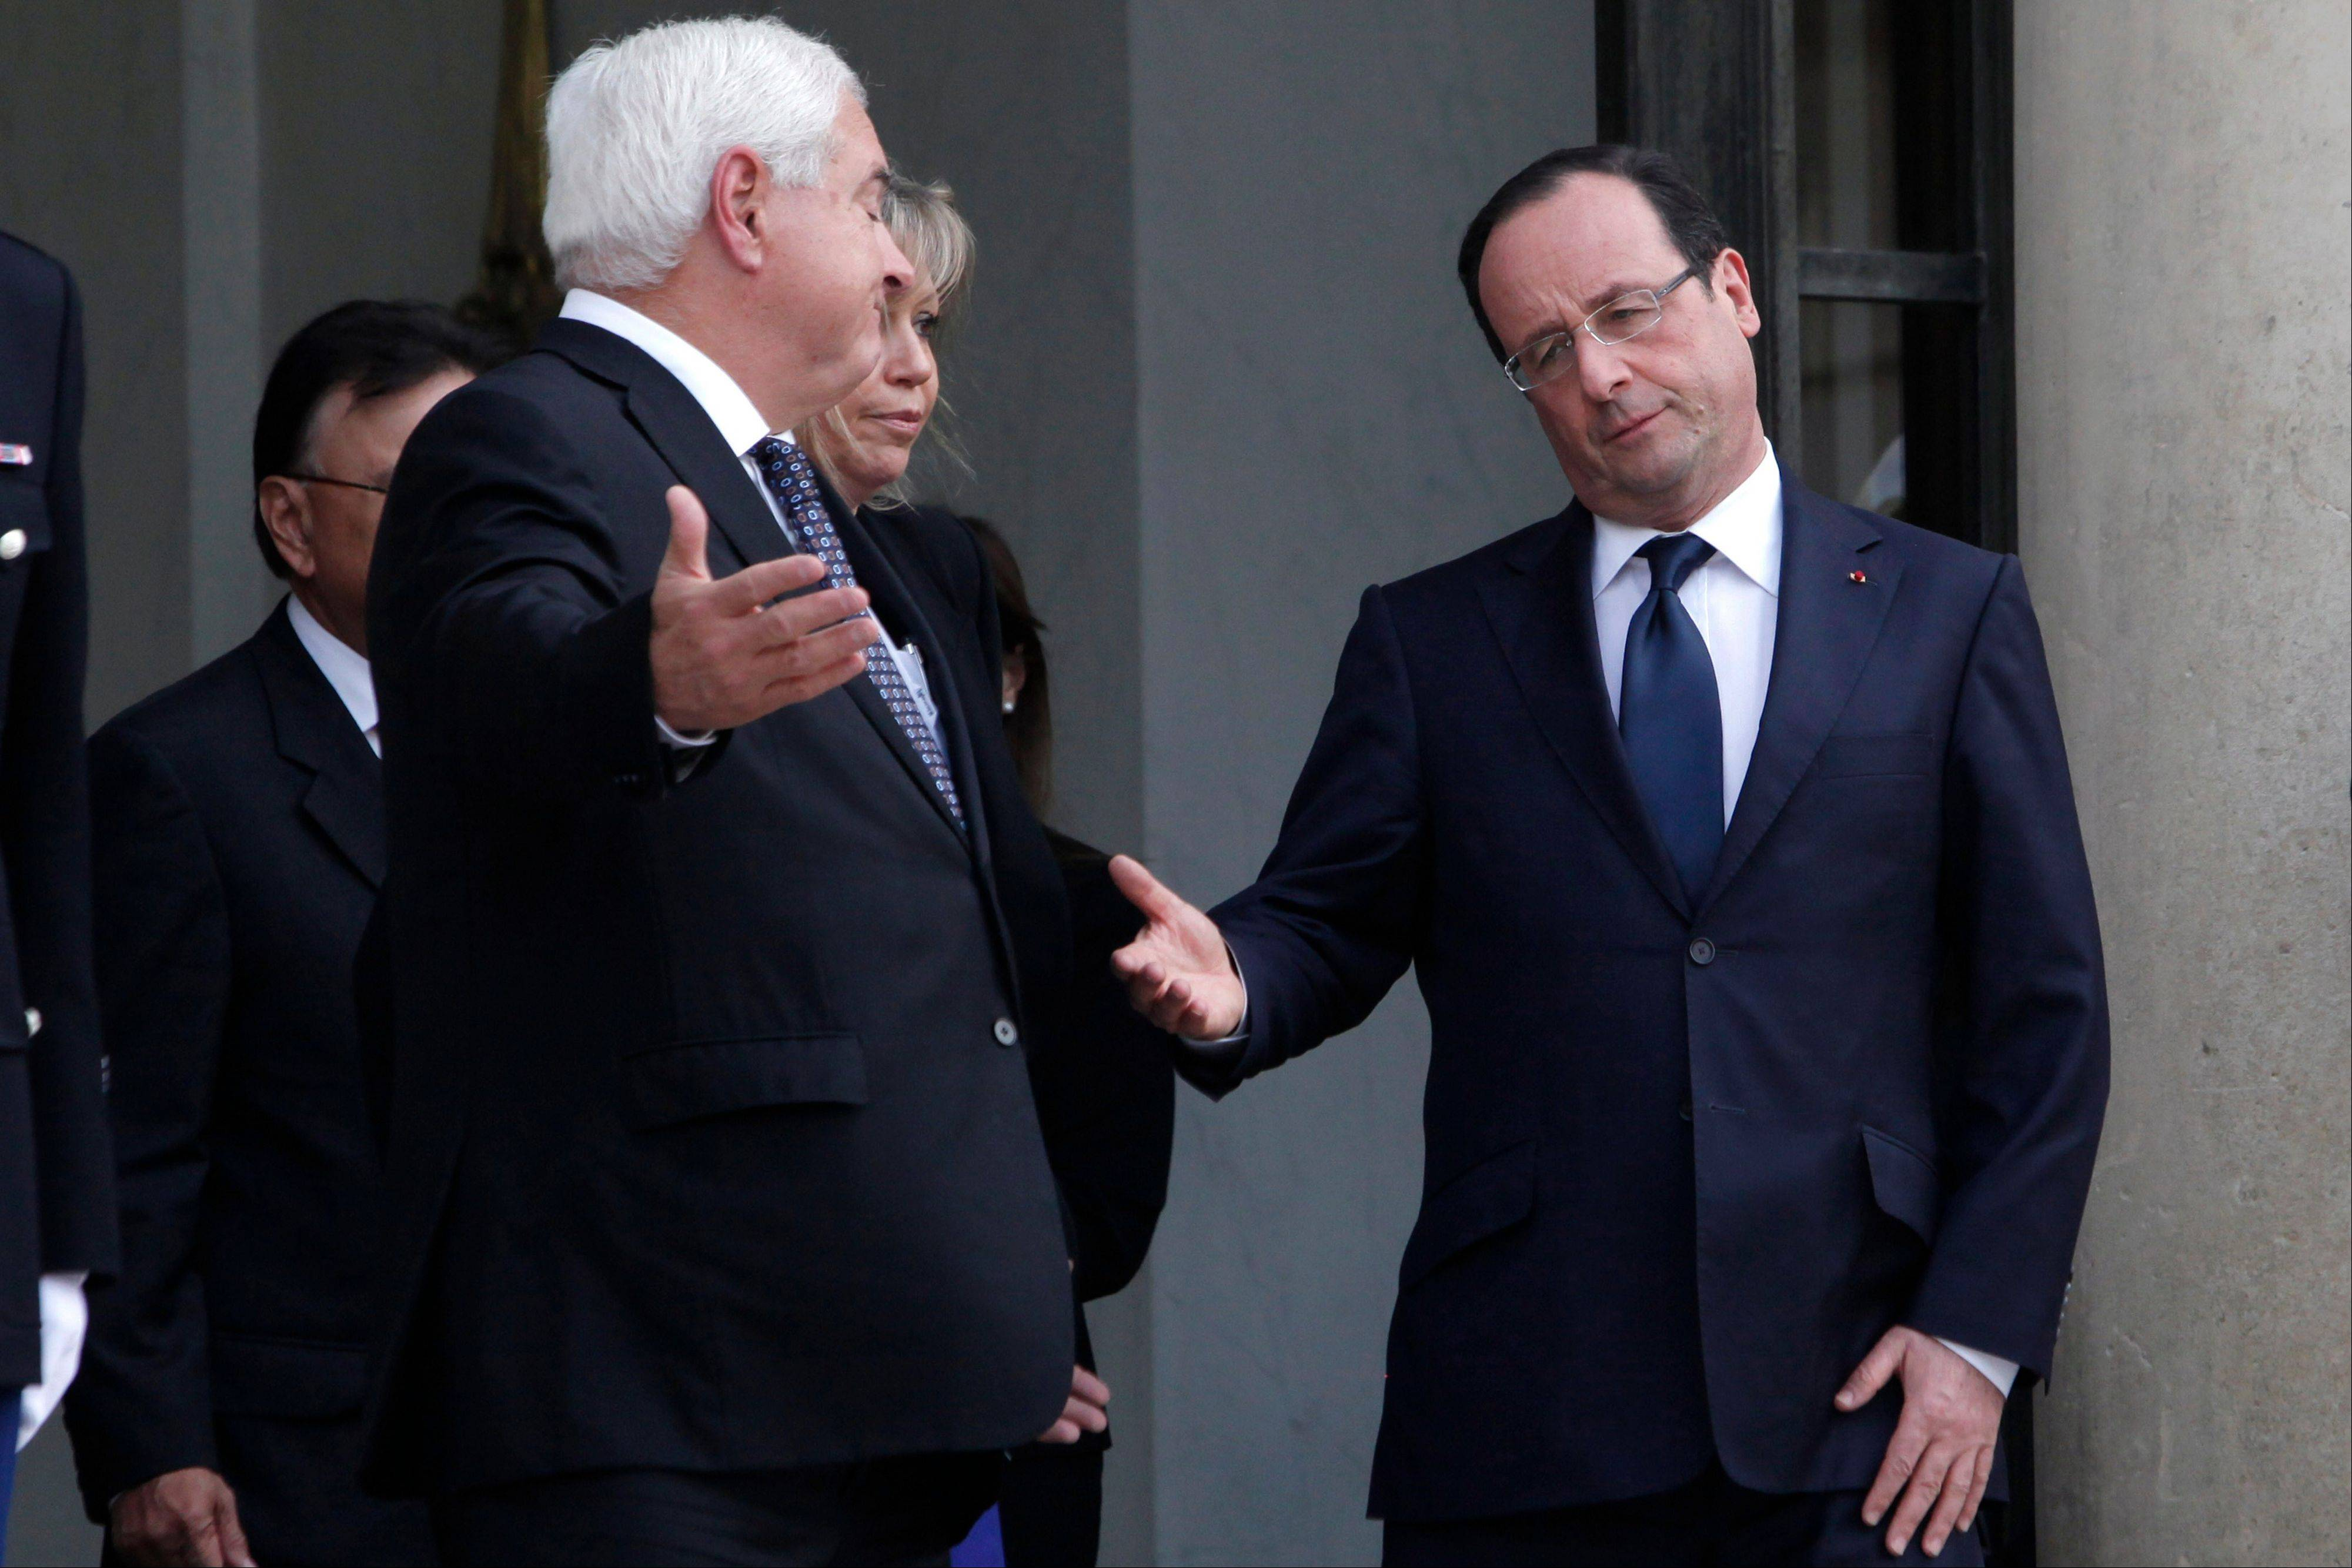 France's President Francois Hollande, right, and his Panamanian counterpart Ricardo Martinelli, left, gesture at the end of a meeting Friday, at the Elysee Palace, in Paris.